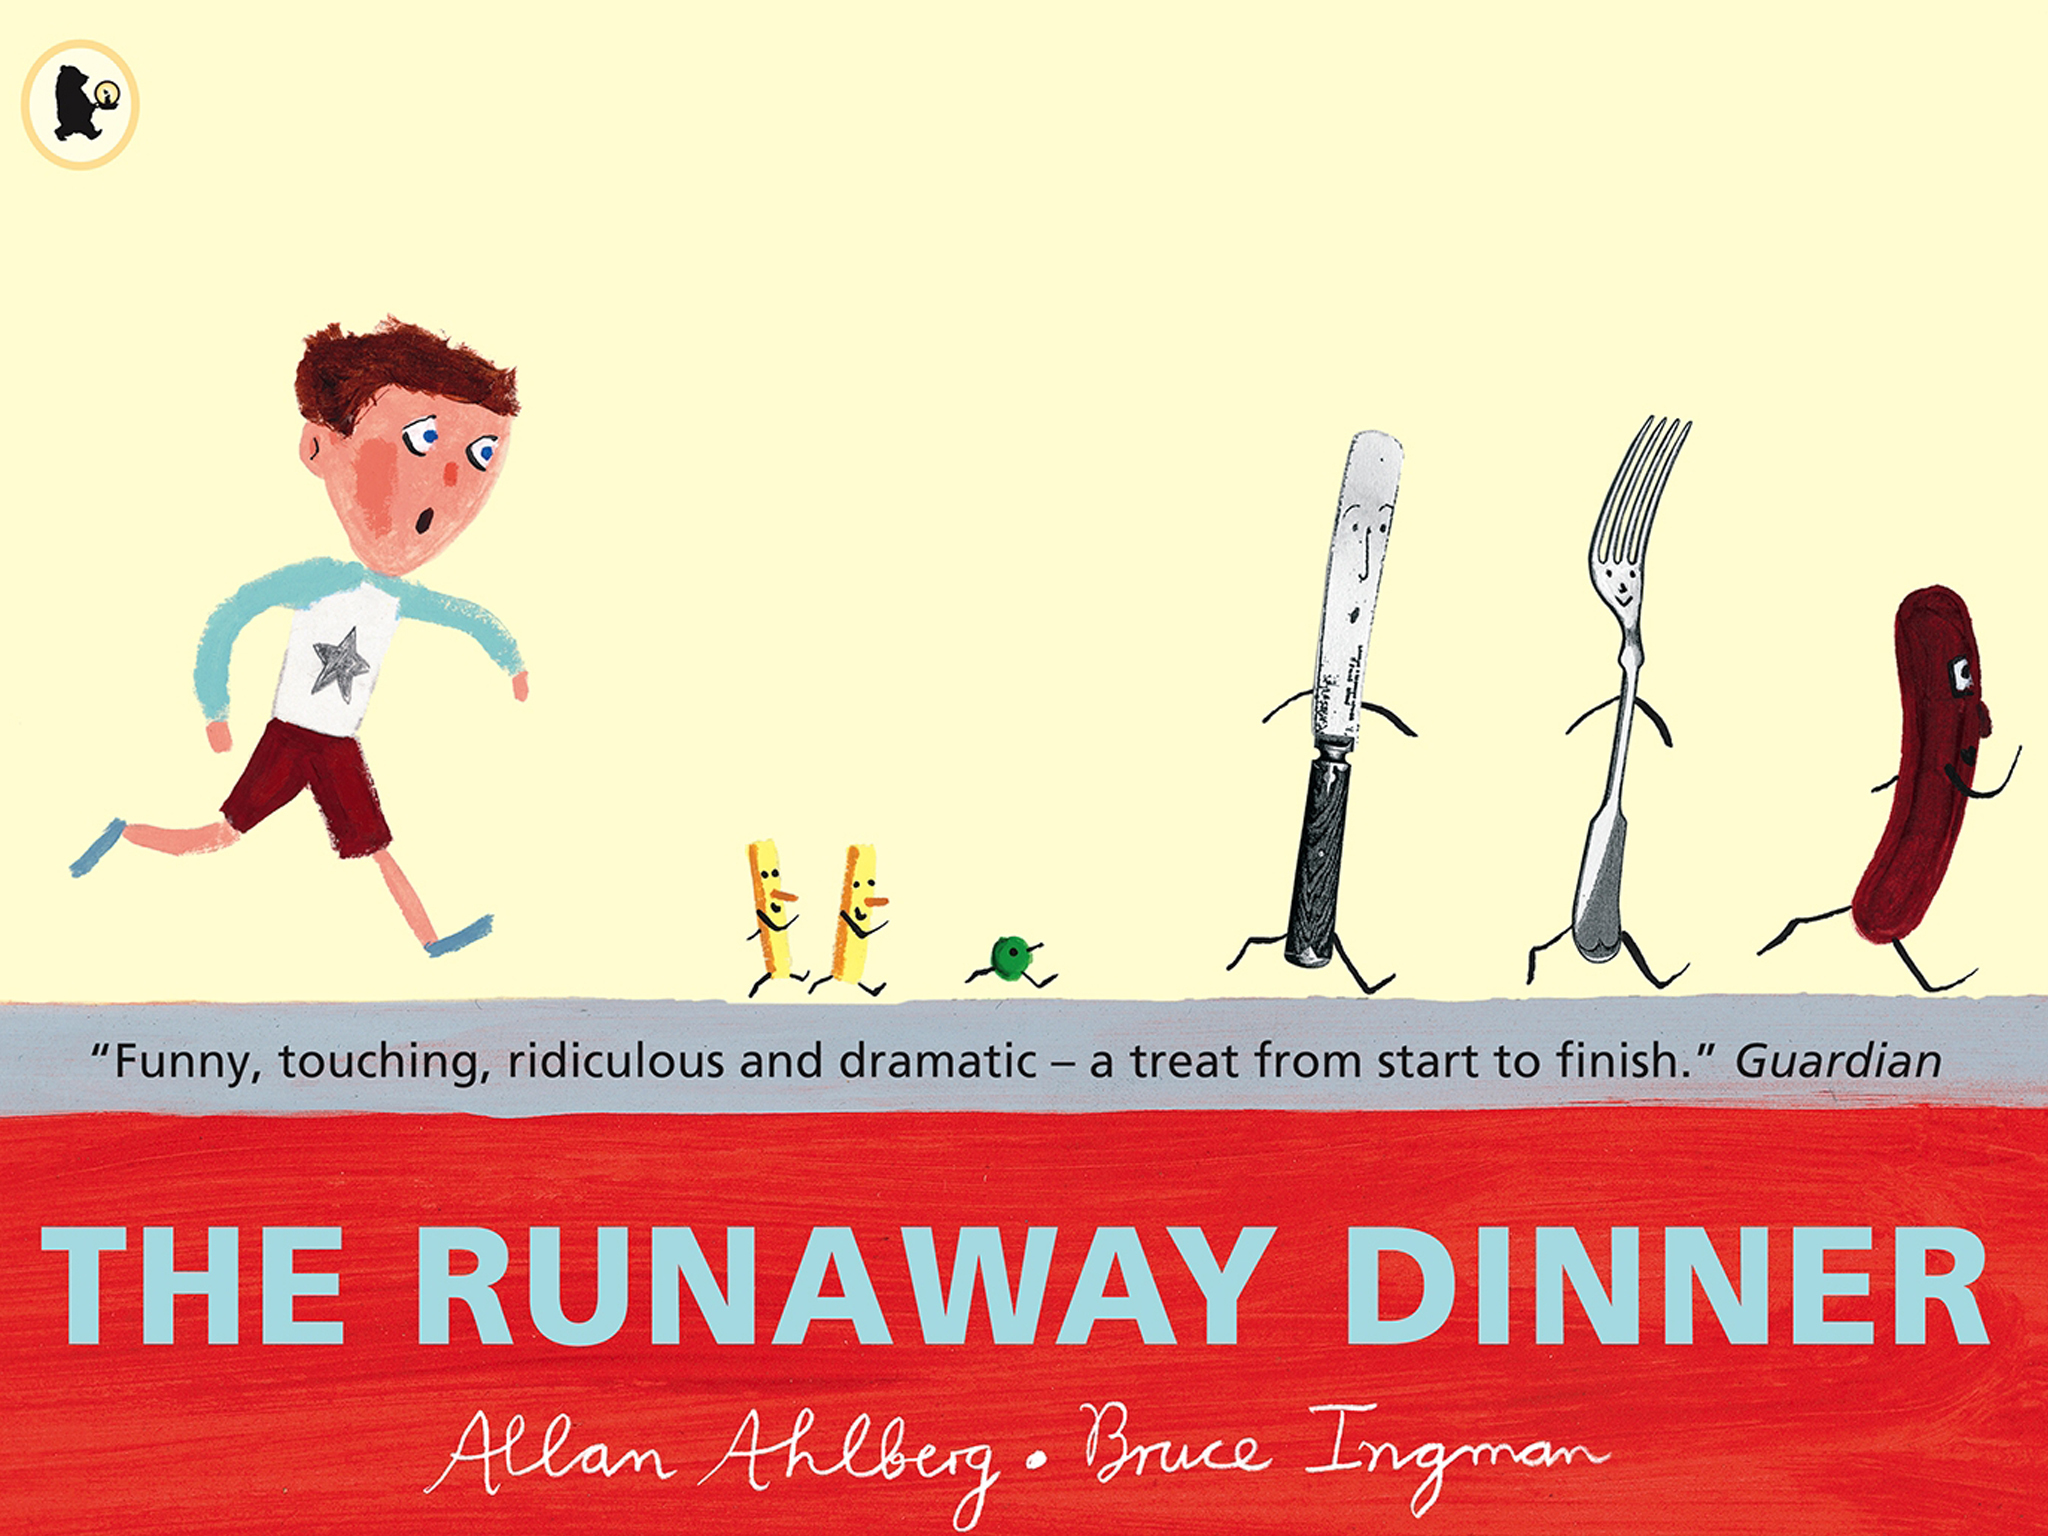 100 best children's books: The Runaway Dinner